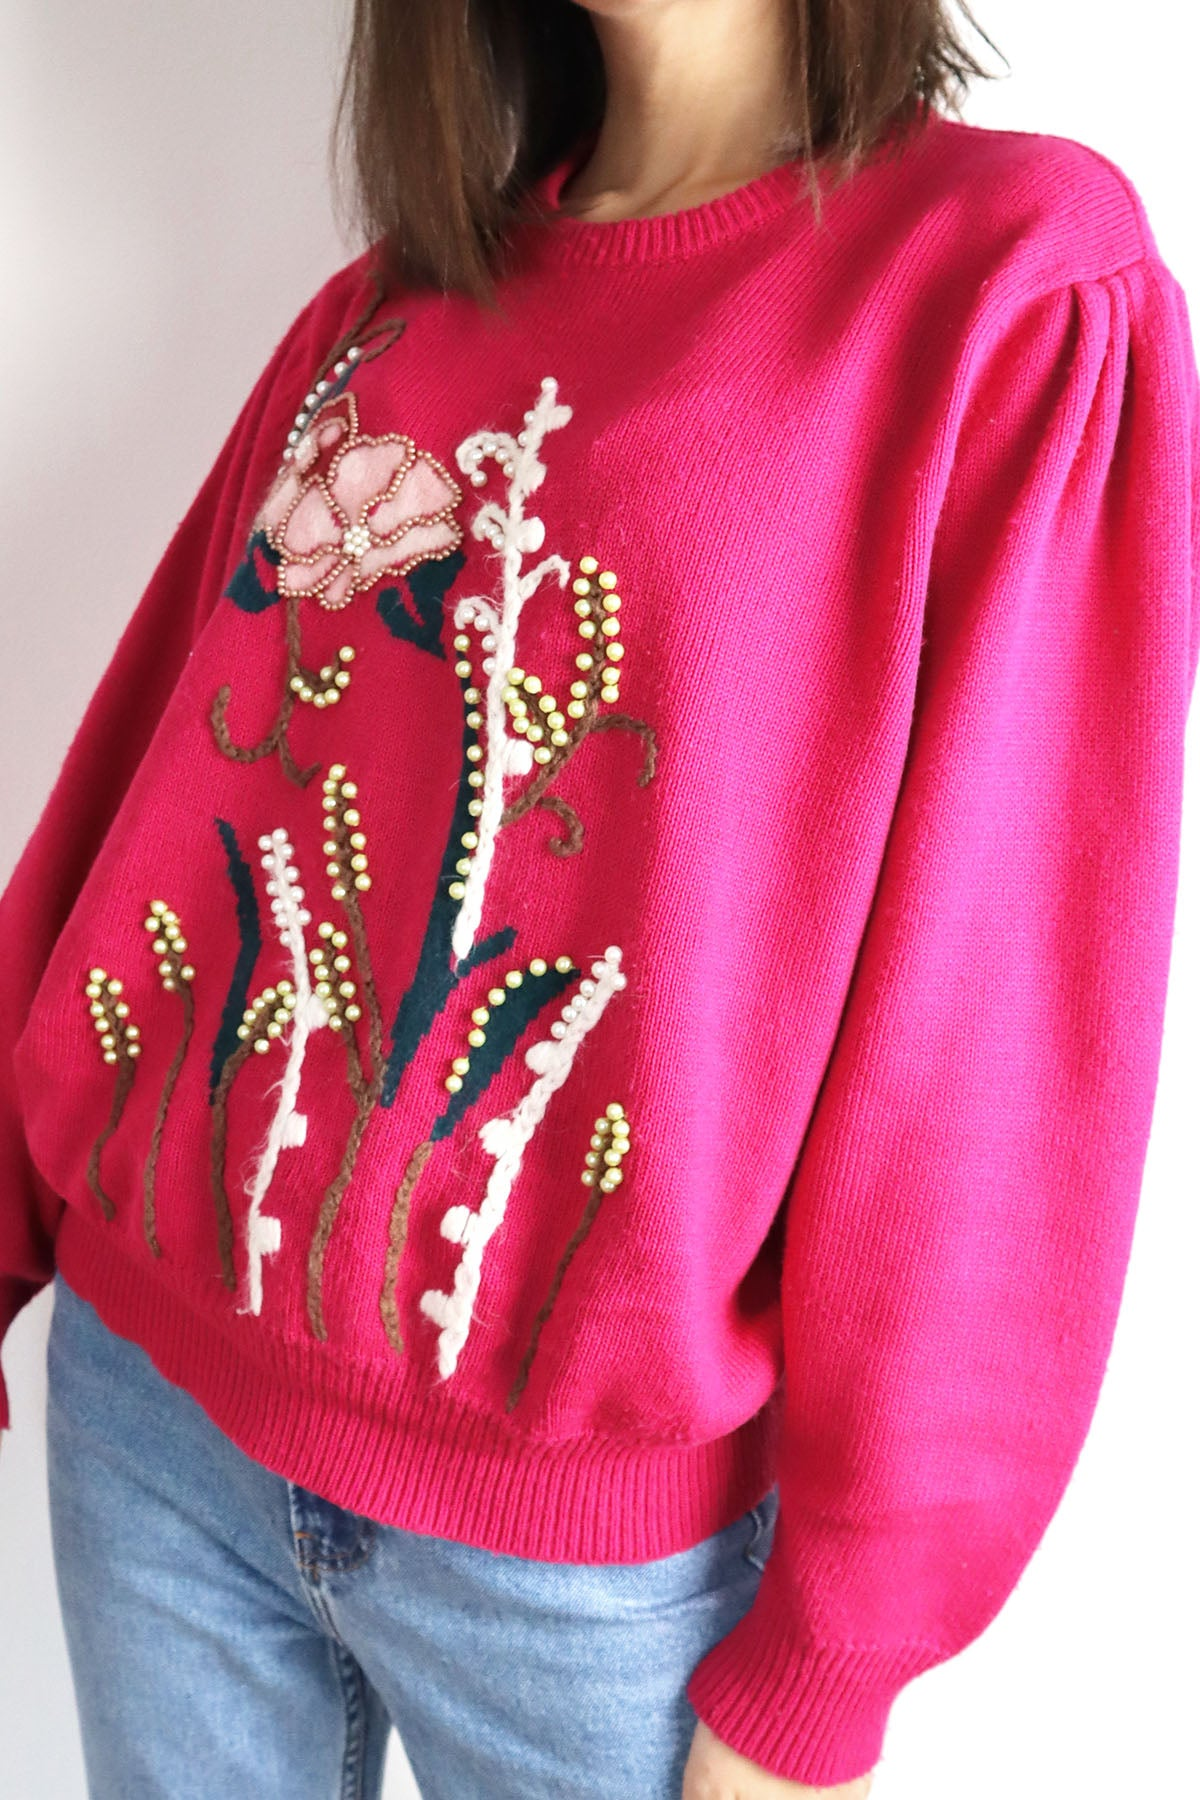 Vintage Pullover With Pearl Embroidery